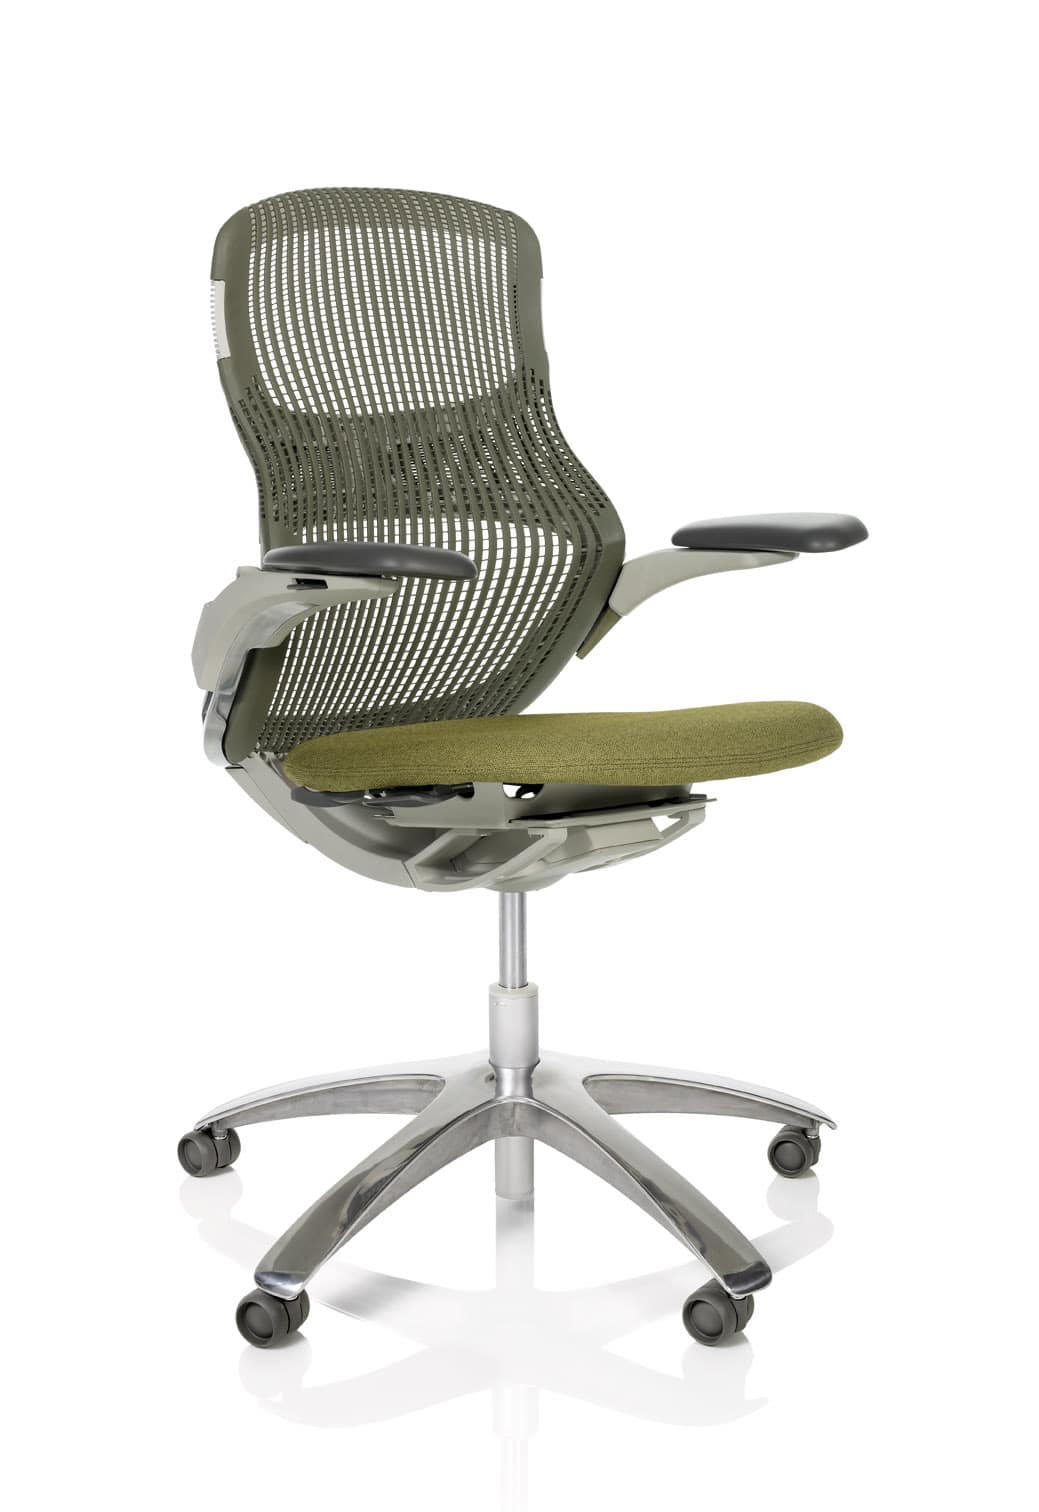 Ergonomic Chair Finding The Best Ergonomic Office Chair Systems Furniture